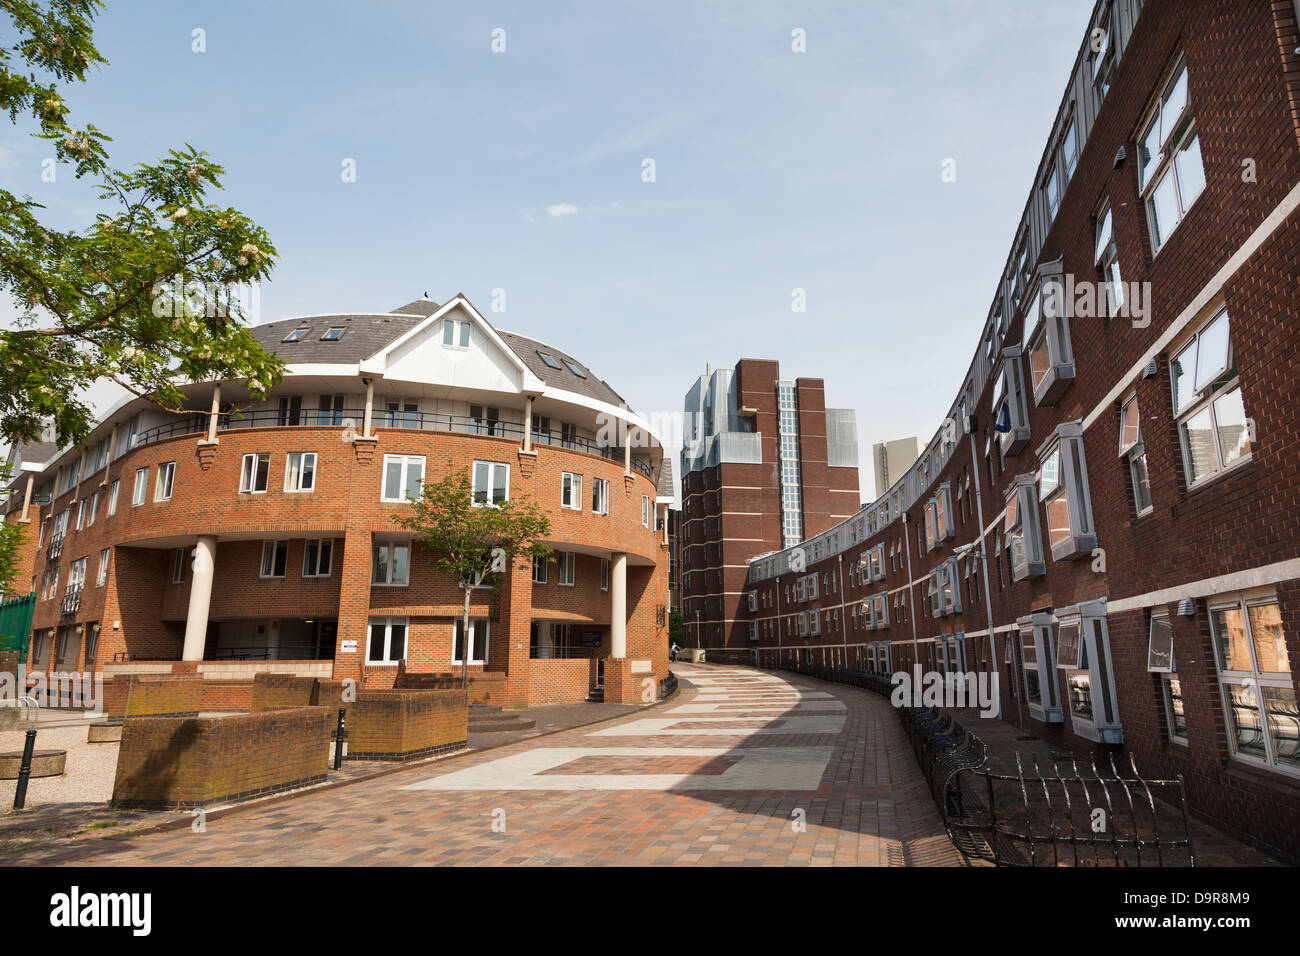 University of Portsmouth Harry Law Halls of residence and Guildhall Halls - Stock Image